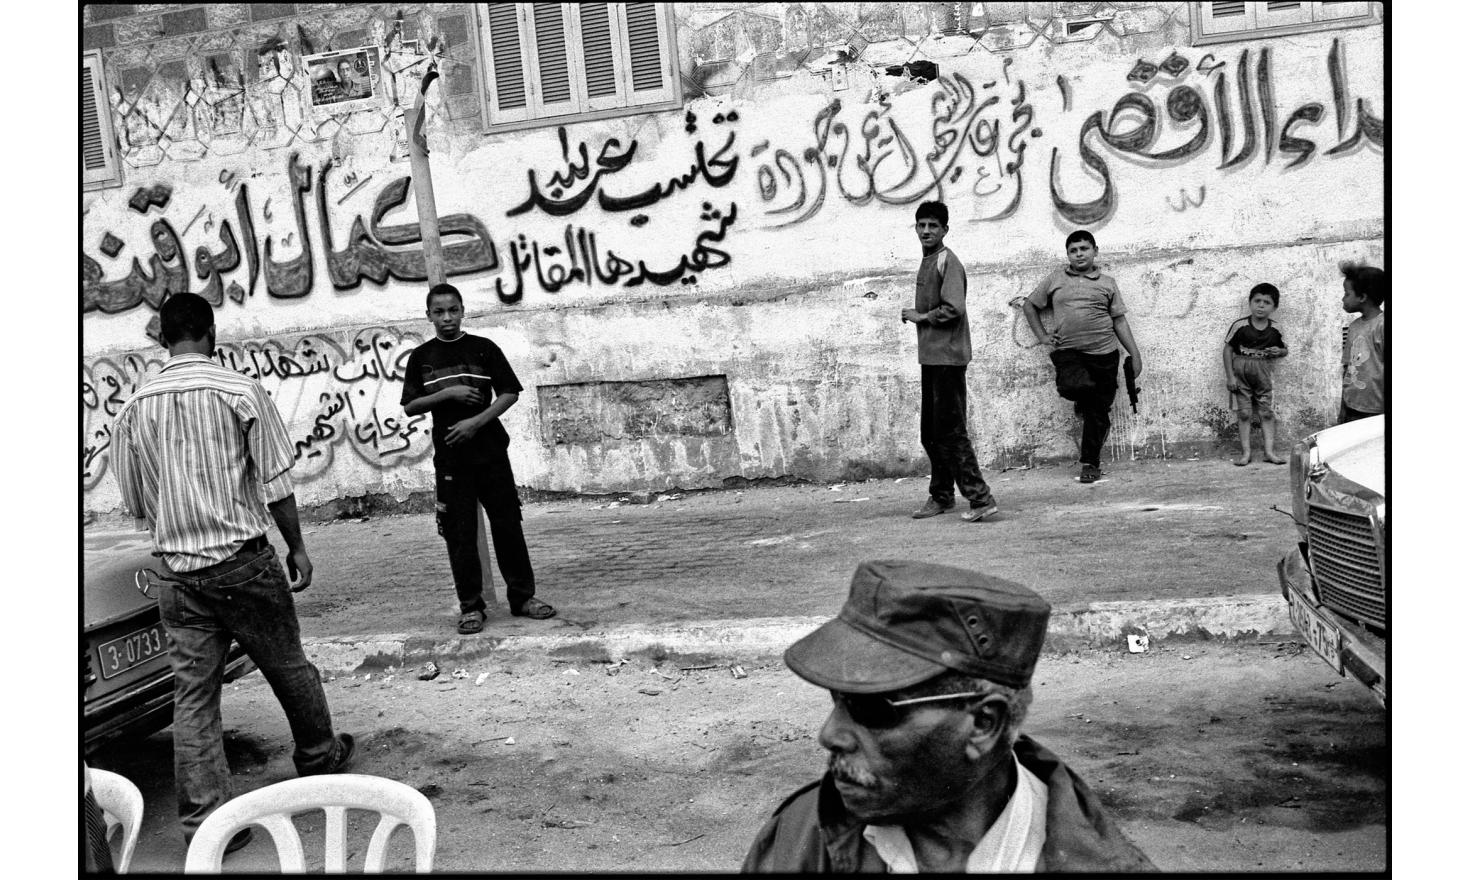 Outside the home of a bodyguard of Abu Mazen, who was killed two days ago in a shootout. Occupied gaza strip. November 2004.